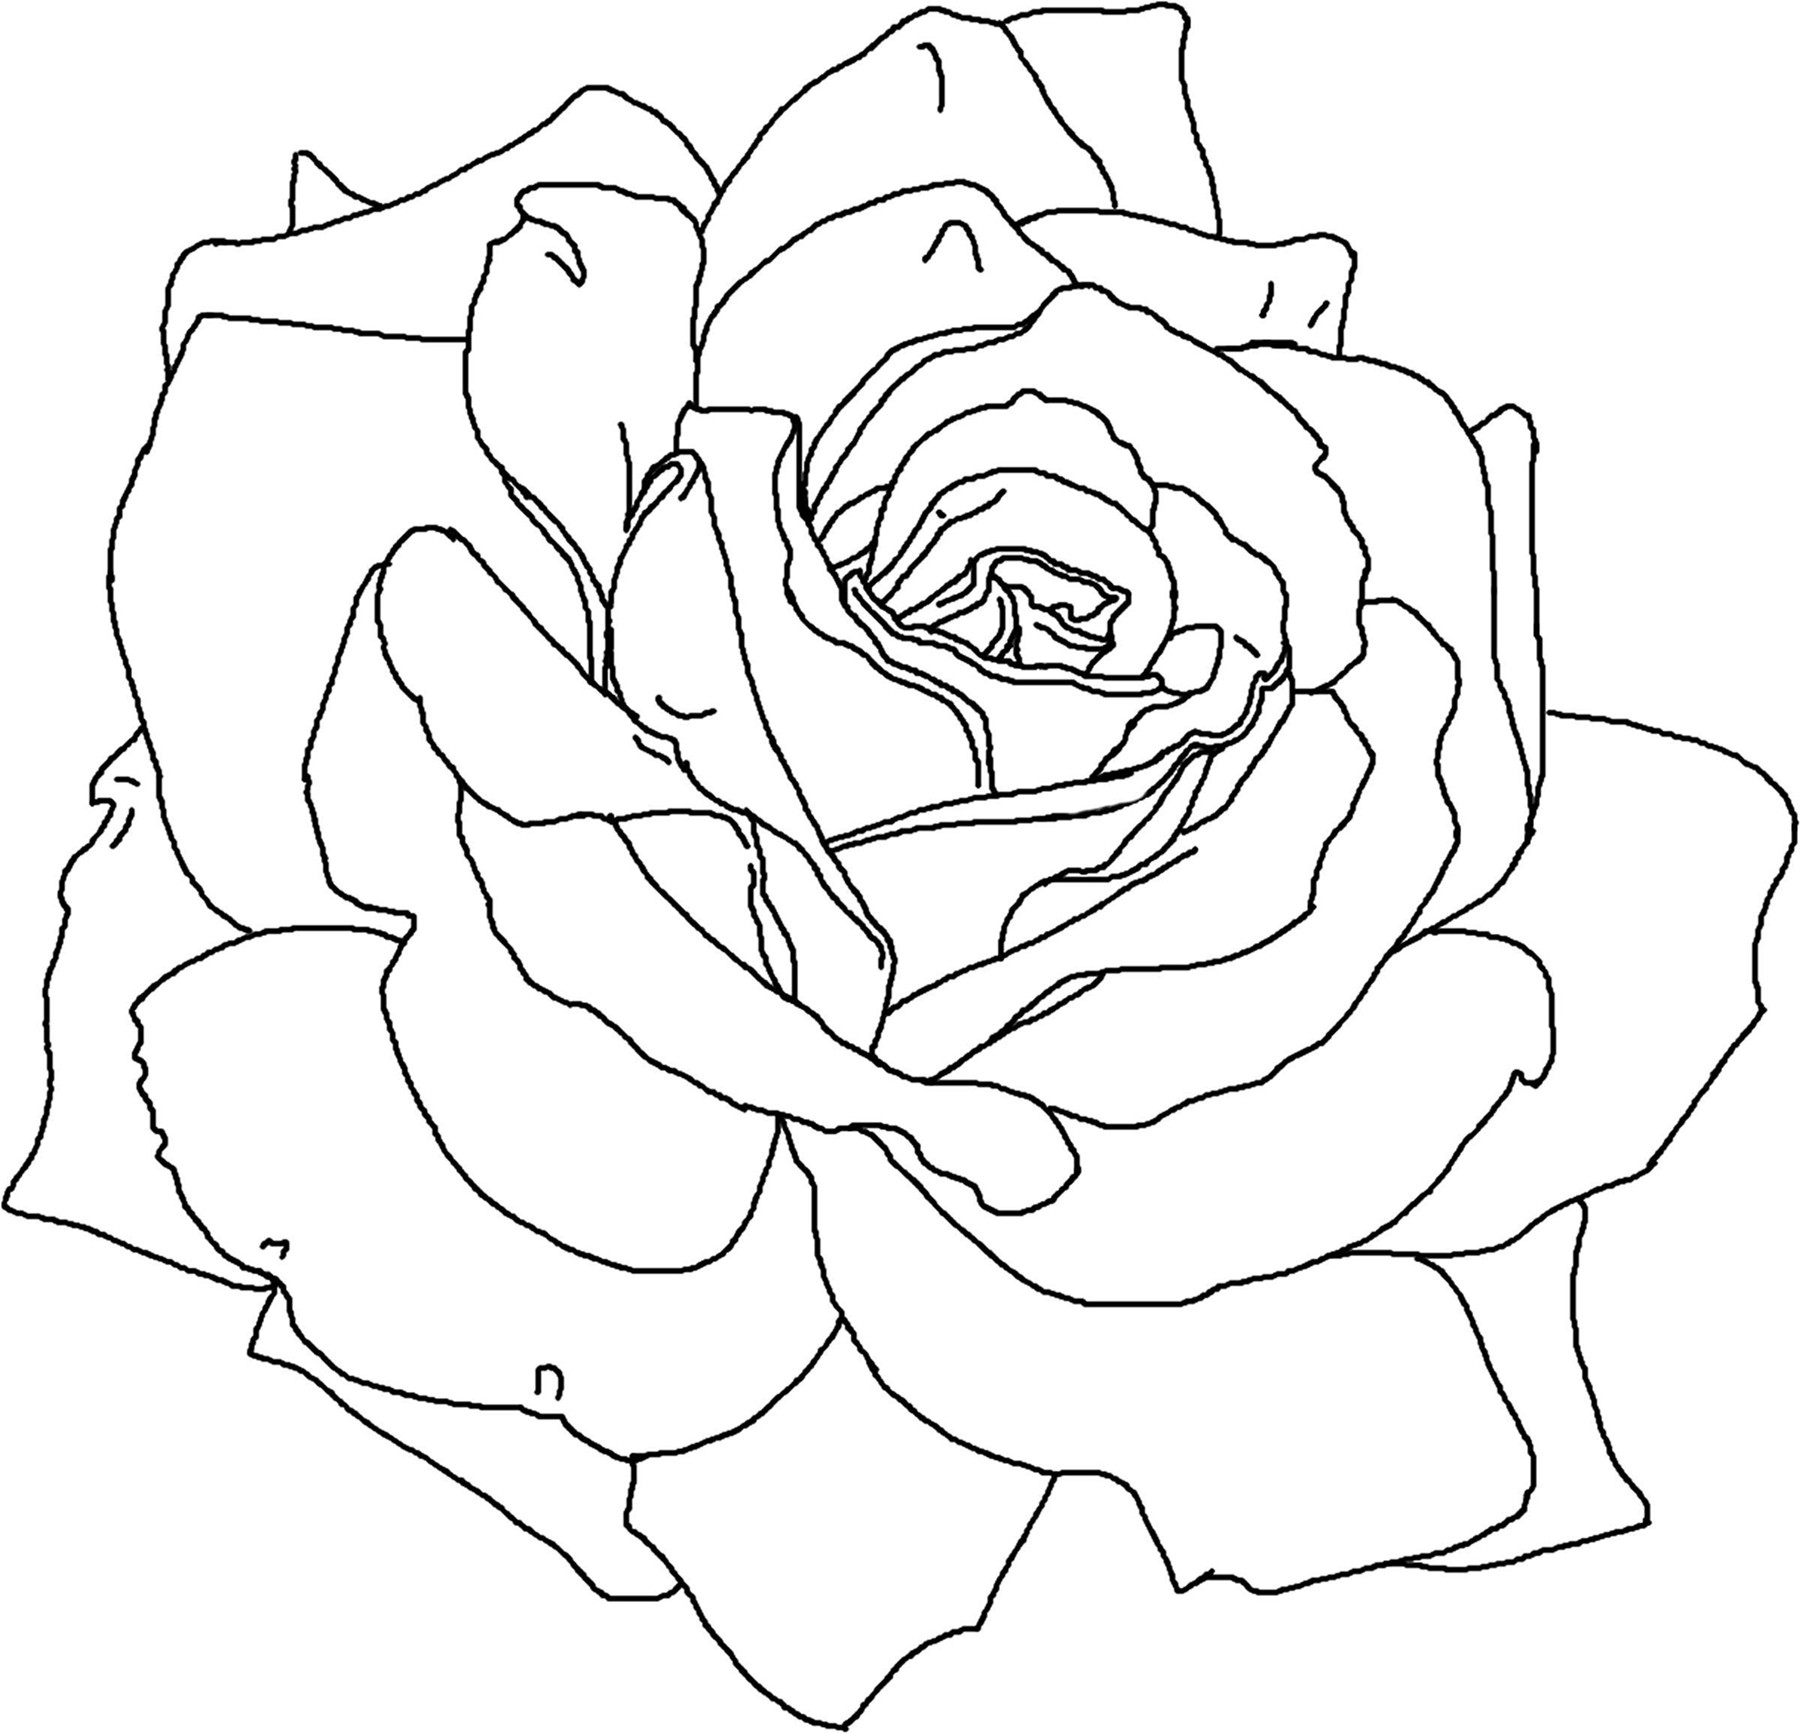 Flower Coloring Pages For Adults Printable  Free Printable Flower Coloring Pages For Kids Best